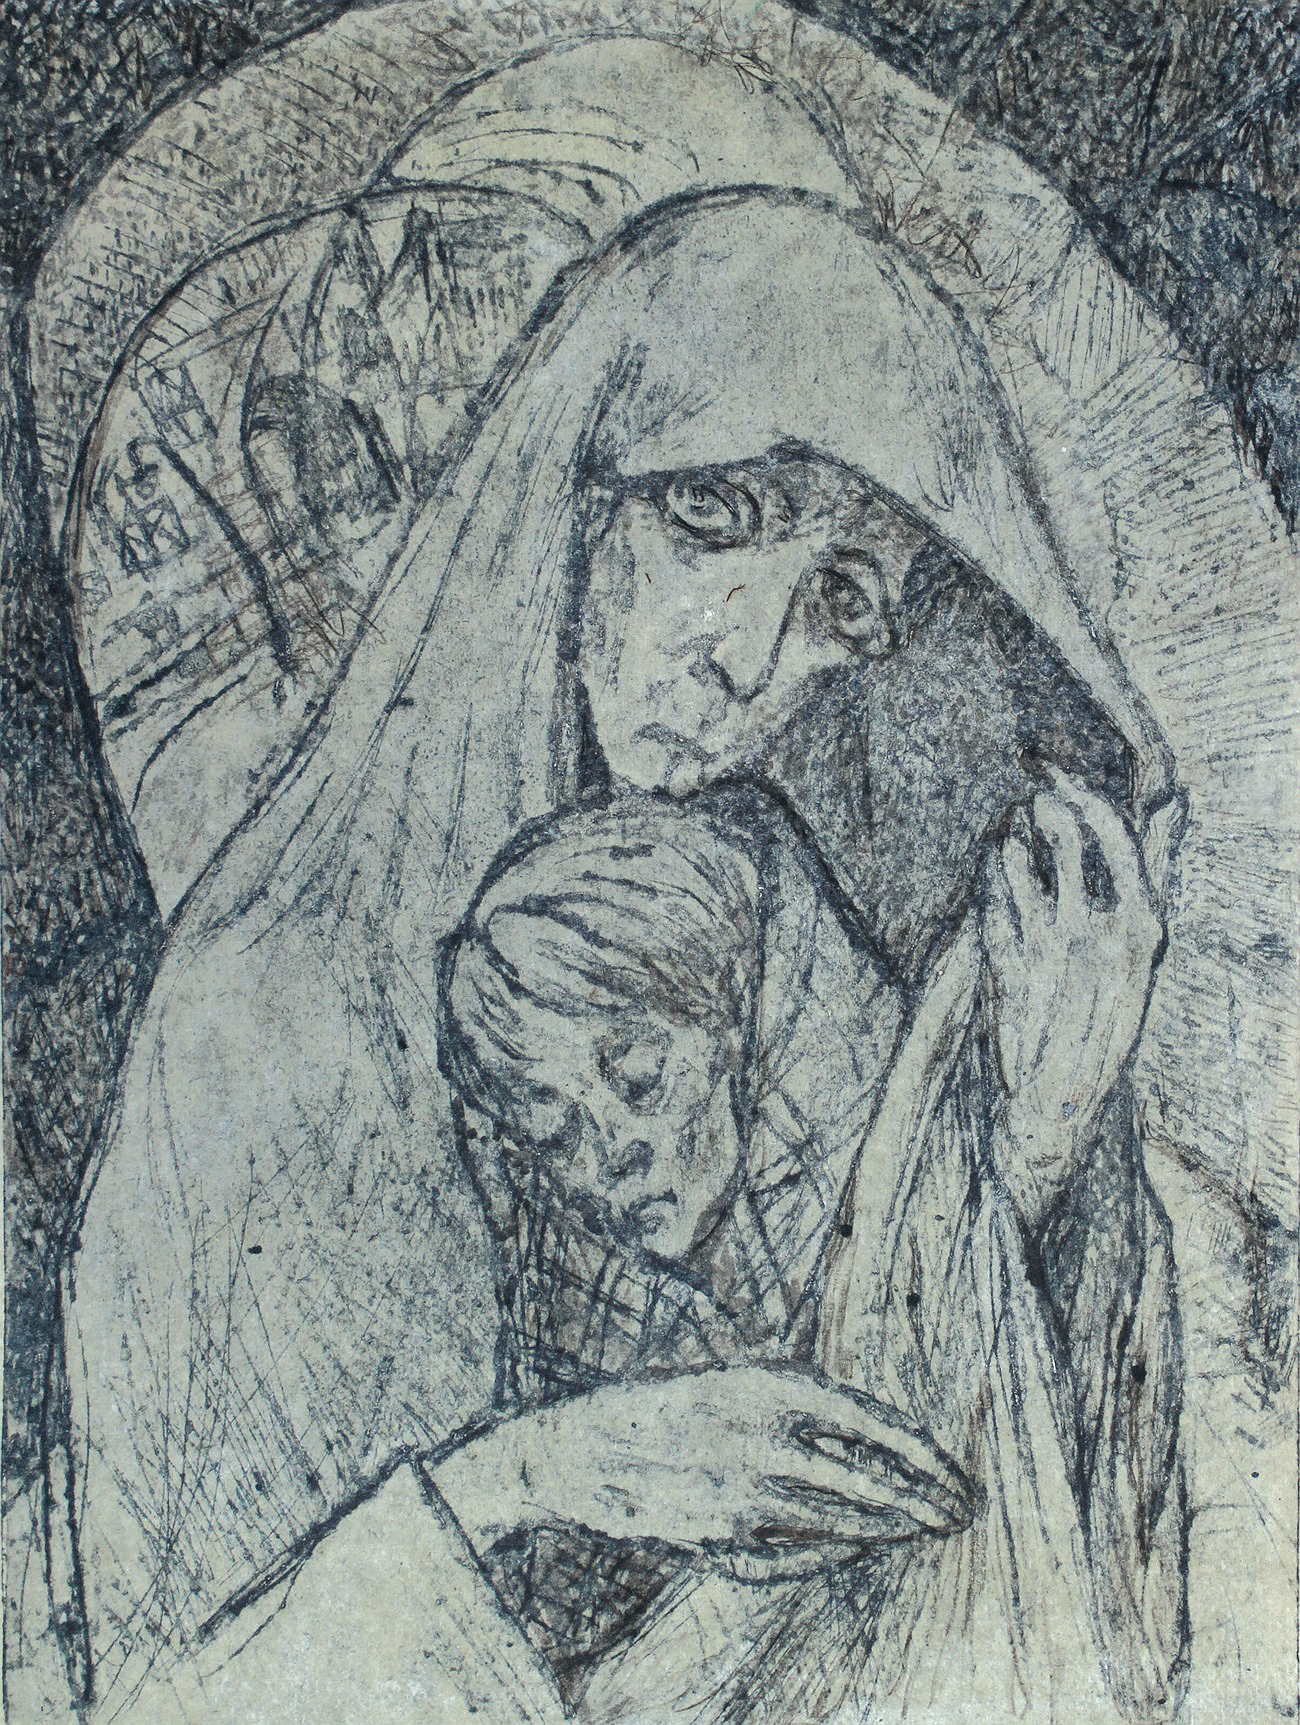 Together with her co-author, Svetlana Magayeva, Marttila published Martyrs of the Siege of Leningrad, a book that features stories of ordinary people who lived and survived in horrible conditions and starvation.  // Picture: Leningrad Madonna (1942)